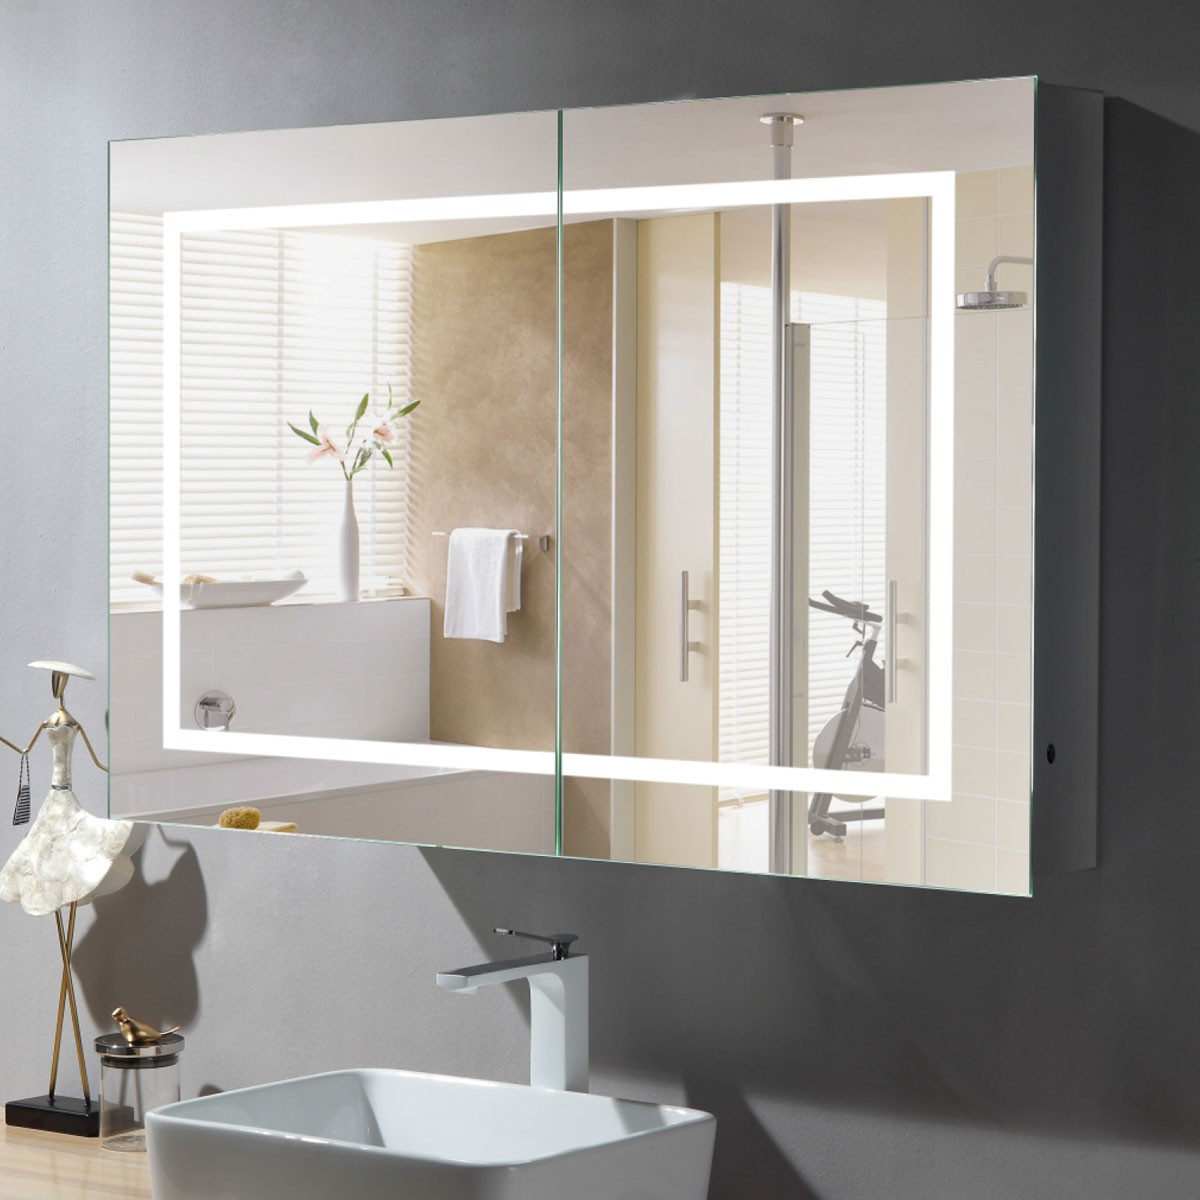 36 x 24 In LED Mirror Cabinet with Infrared Sensor (GG03-3624)